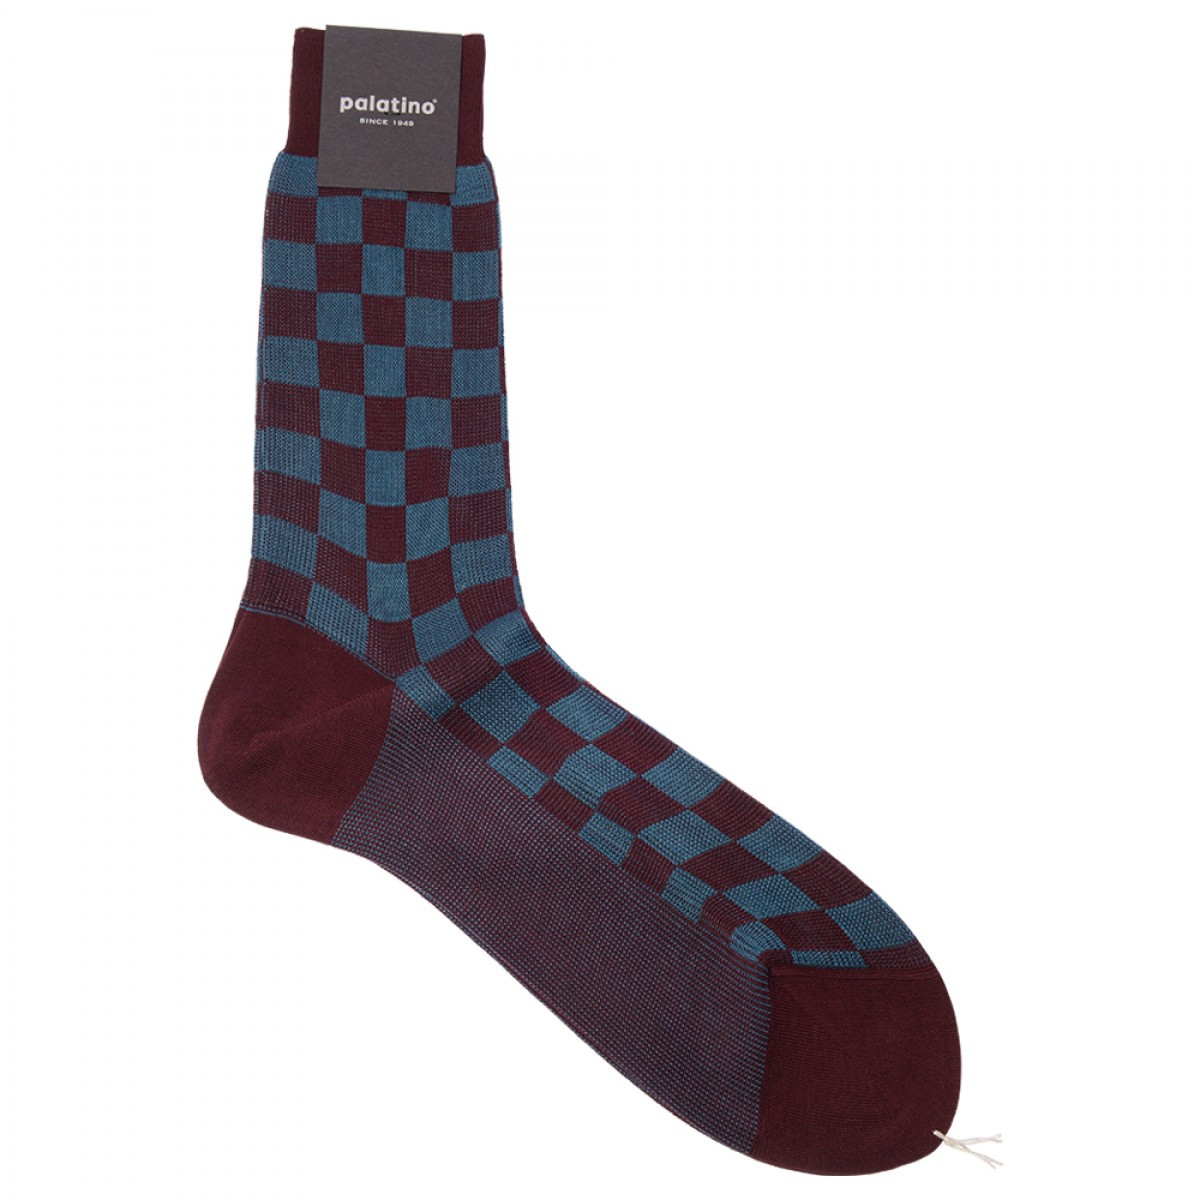 Patterned socks Awesome Palatino Mens Italian Egyptian Cotton Square Patterned Of Superb 48 Images Patterned socks